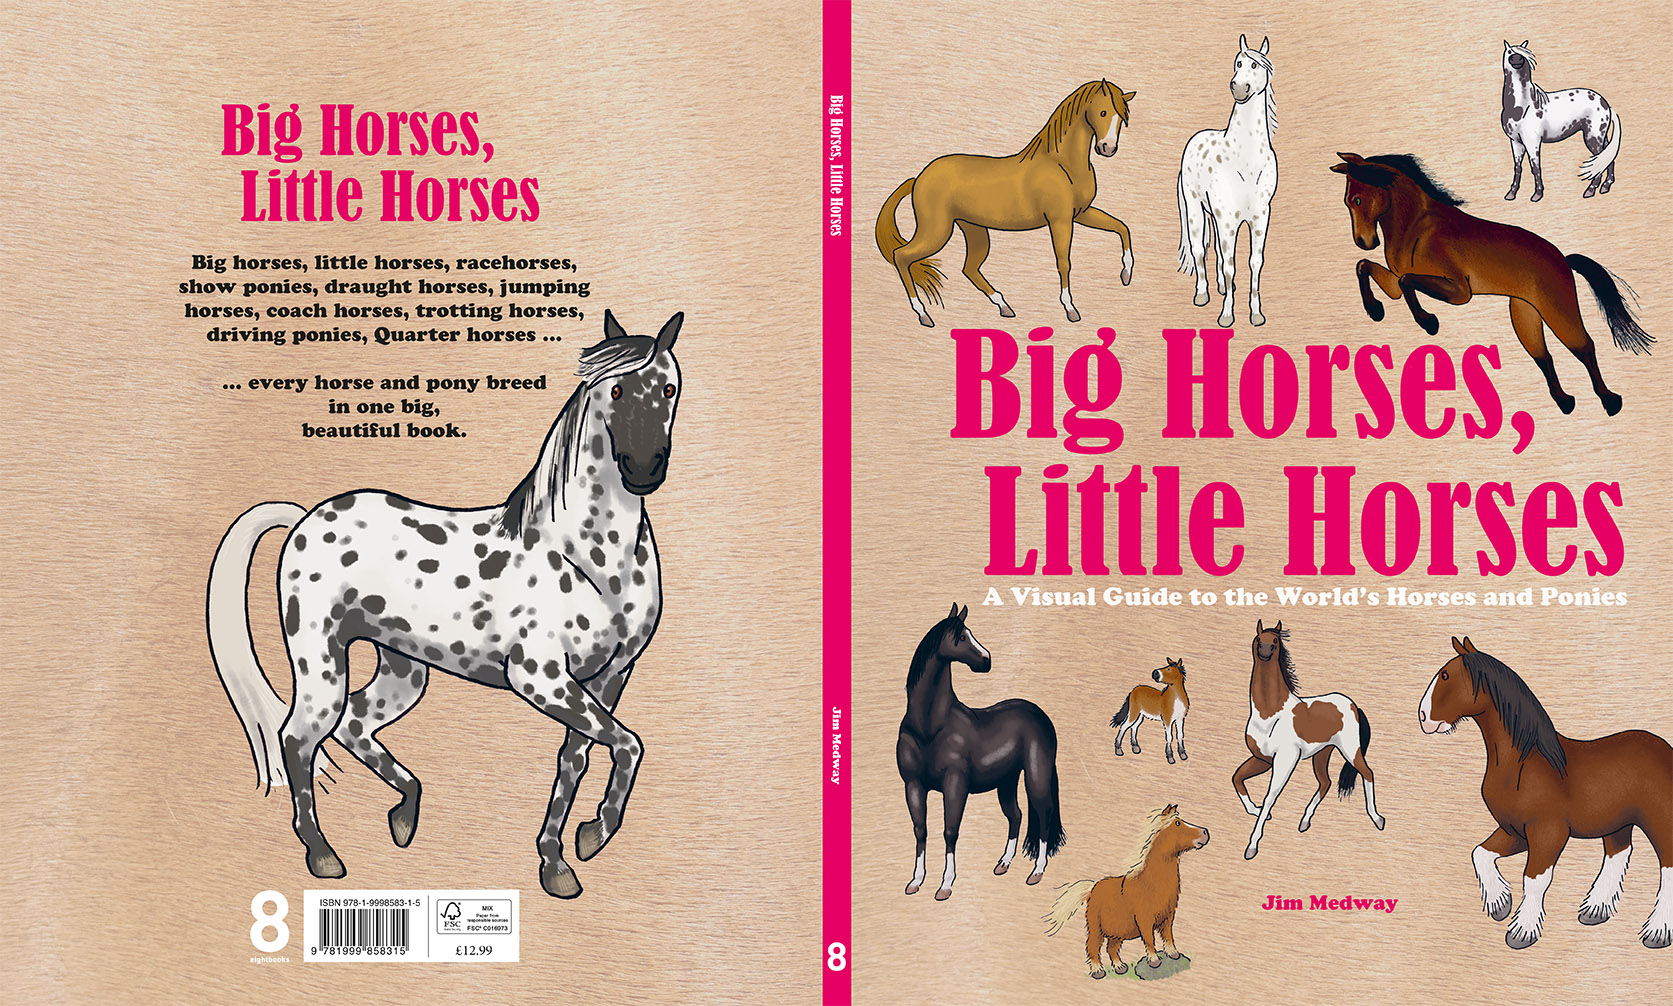 Big Horses Little Horses COVER 72dpi